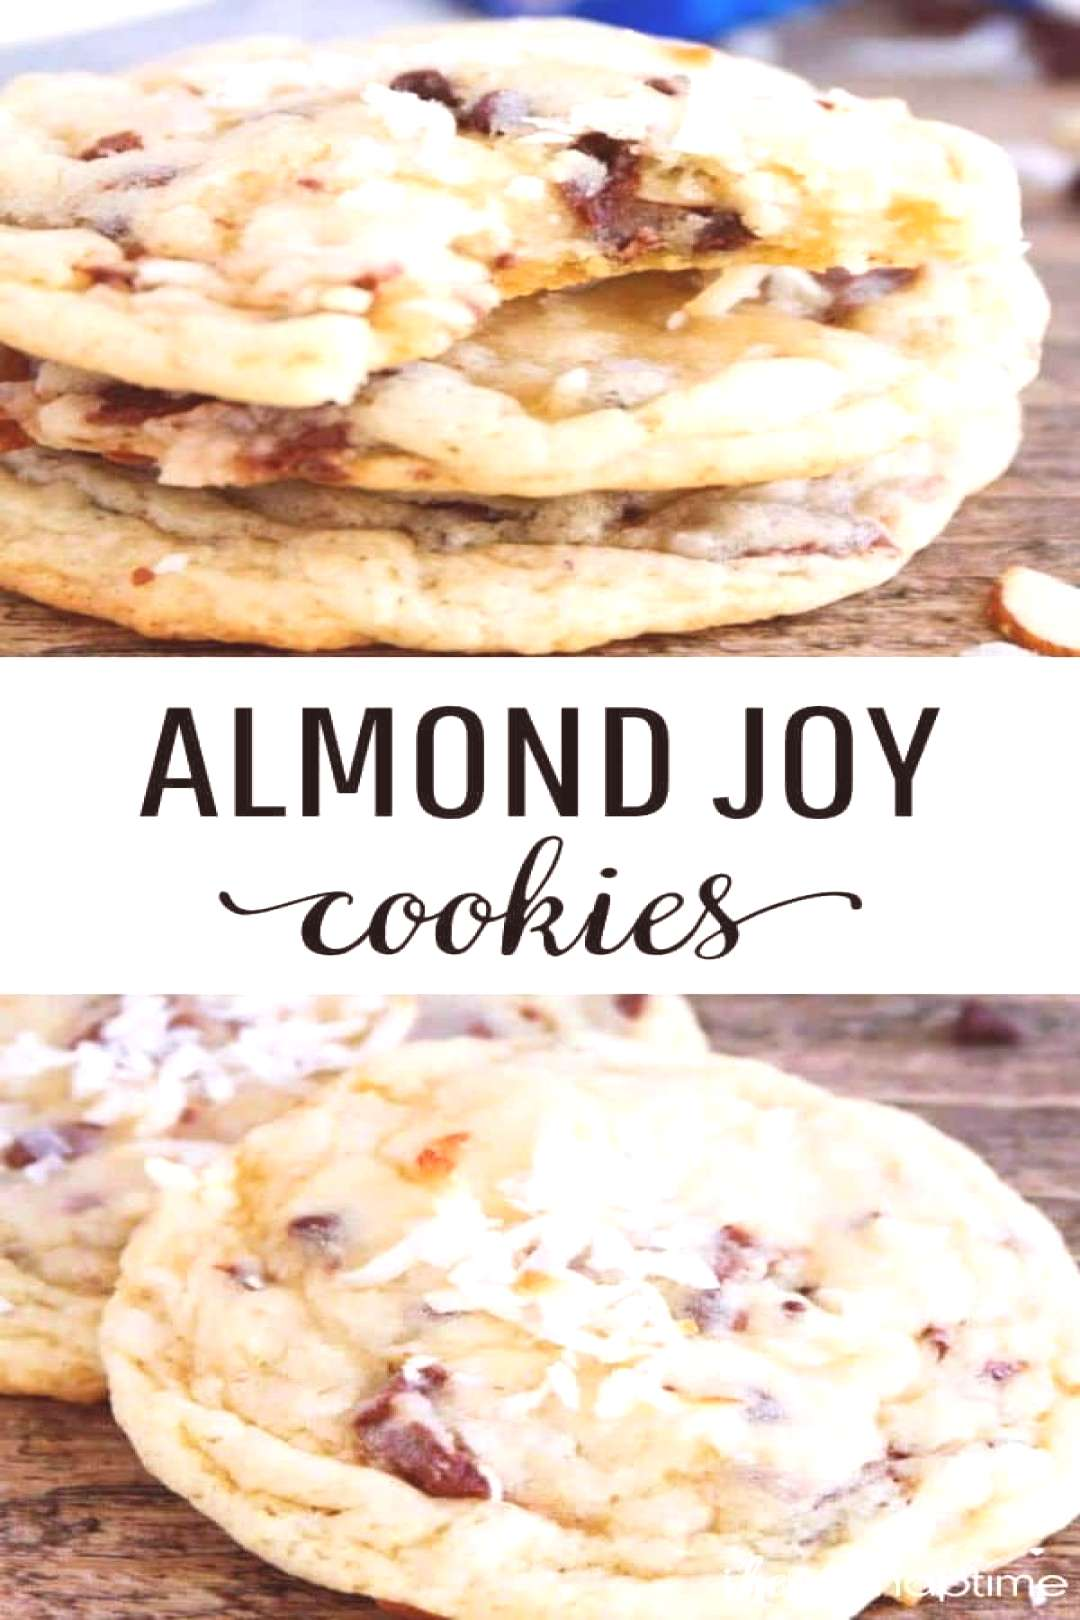 Almond Joy Cookies - Rich coconut cookie dough packed full of coconut, chocolate chips, almonds, an